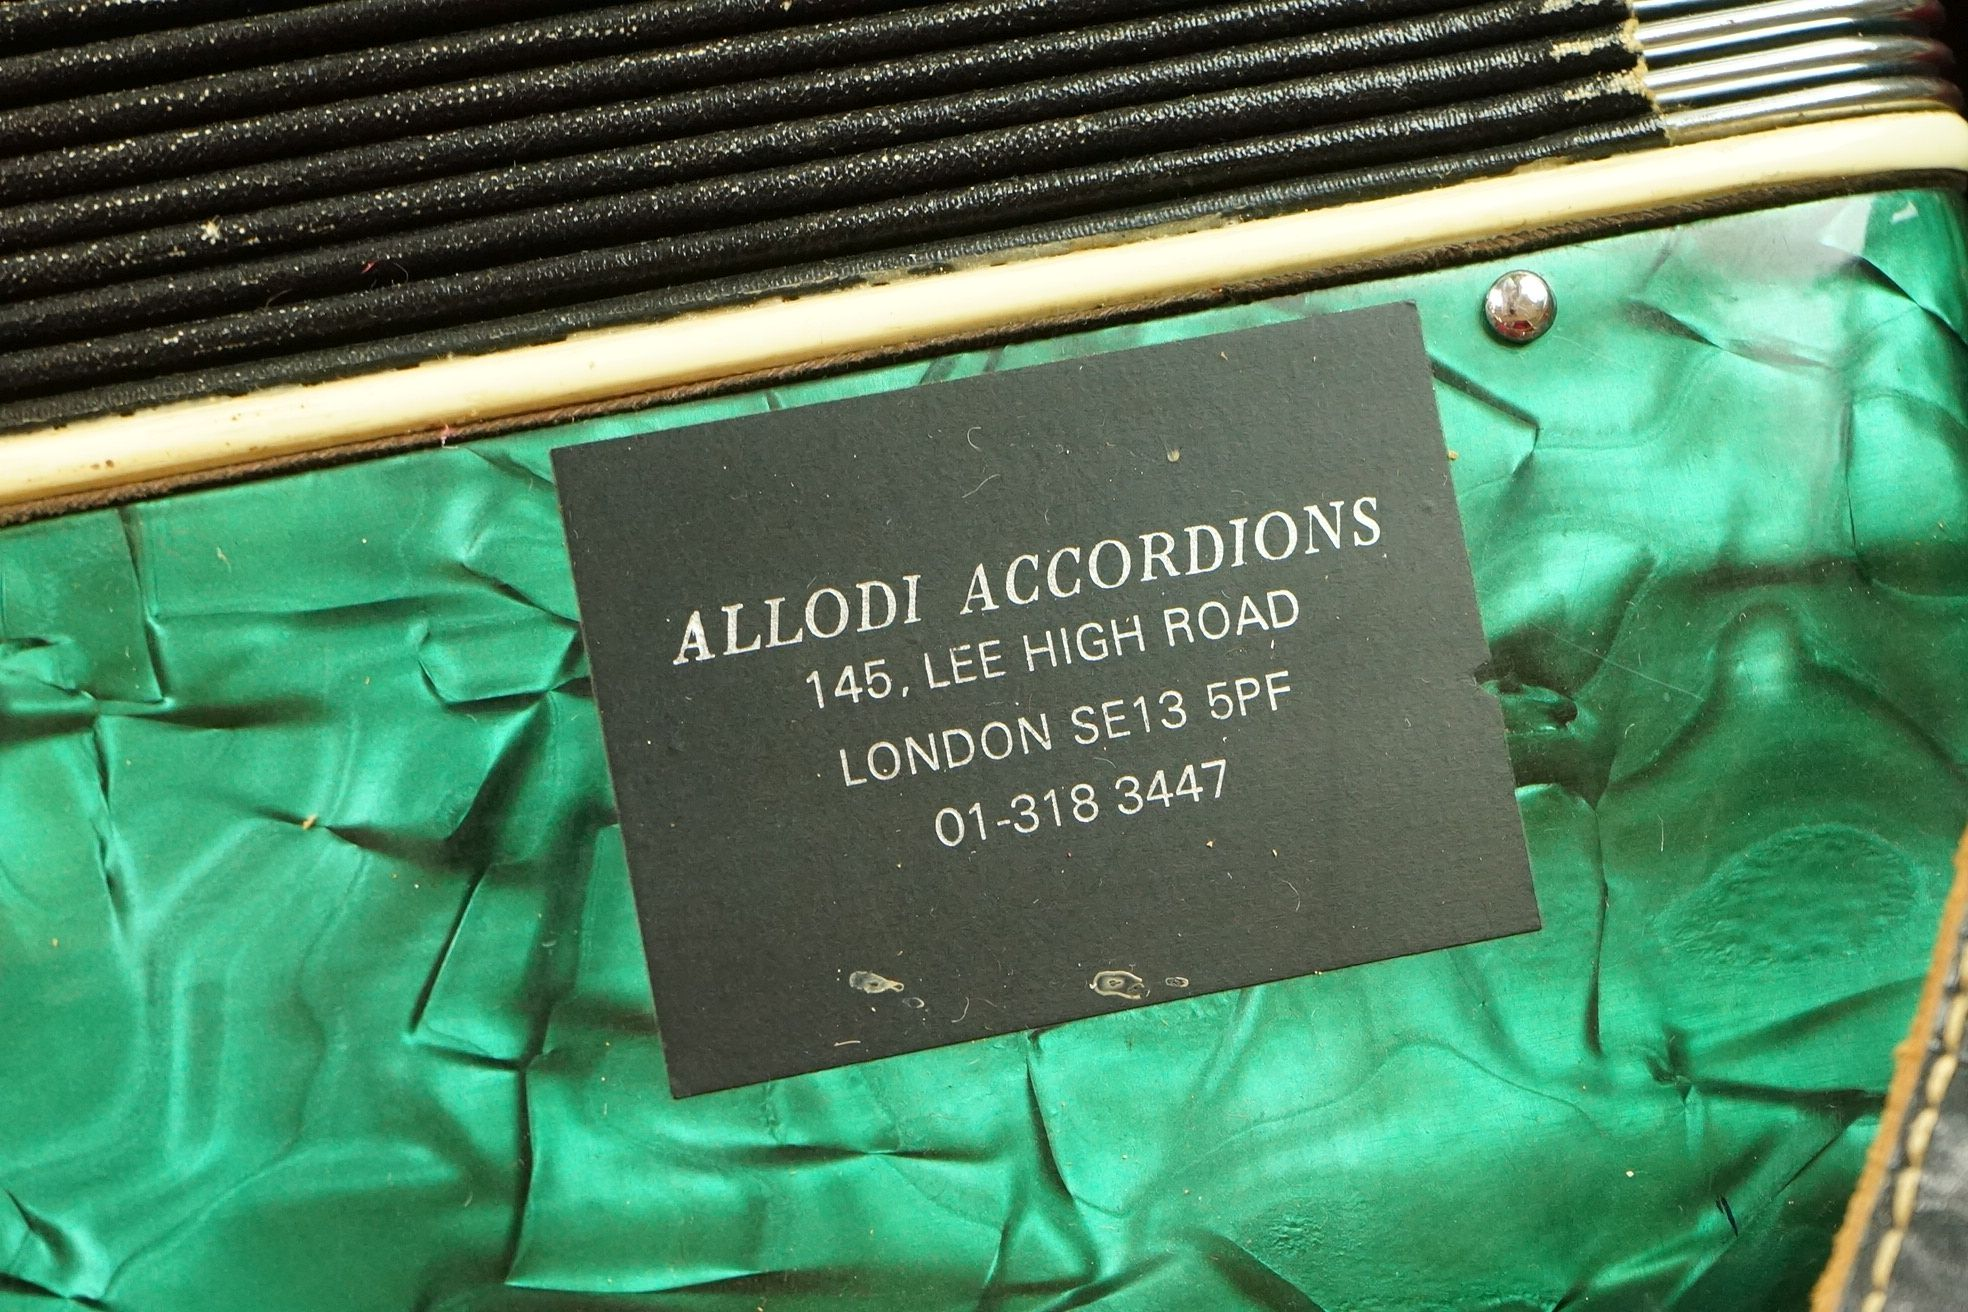 A vintage Parrot Accordion in green in original fitted case. - Image 7 of 10